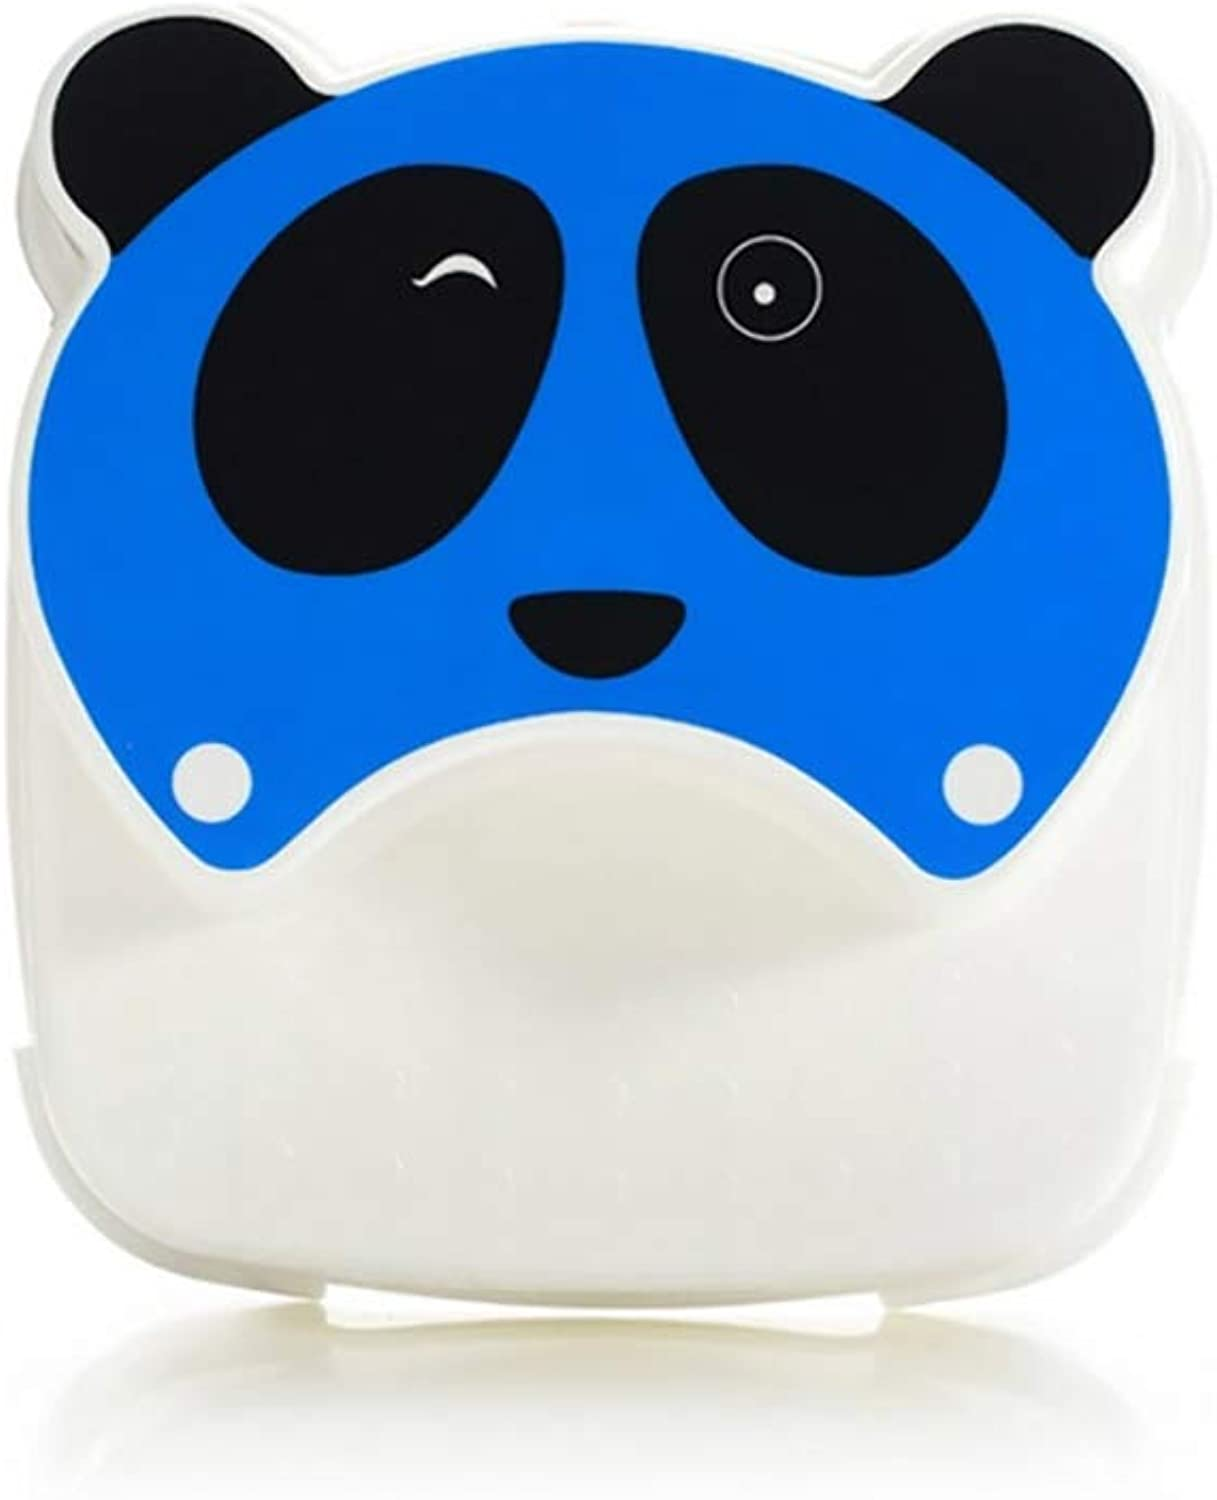 2 Step Stool for Kids, Cute Panda Multi-Function Step Ladder, Environmentally Friendly PP Material